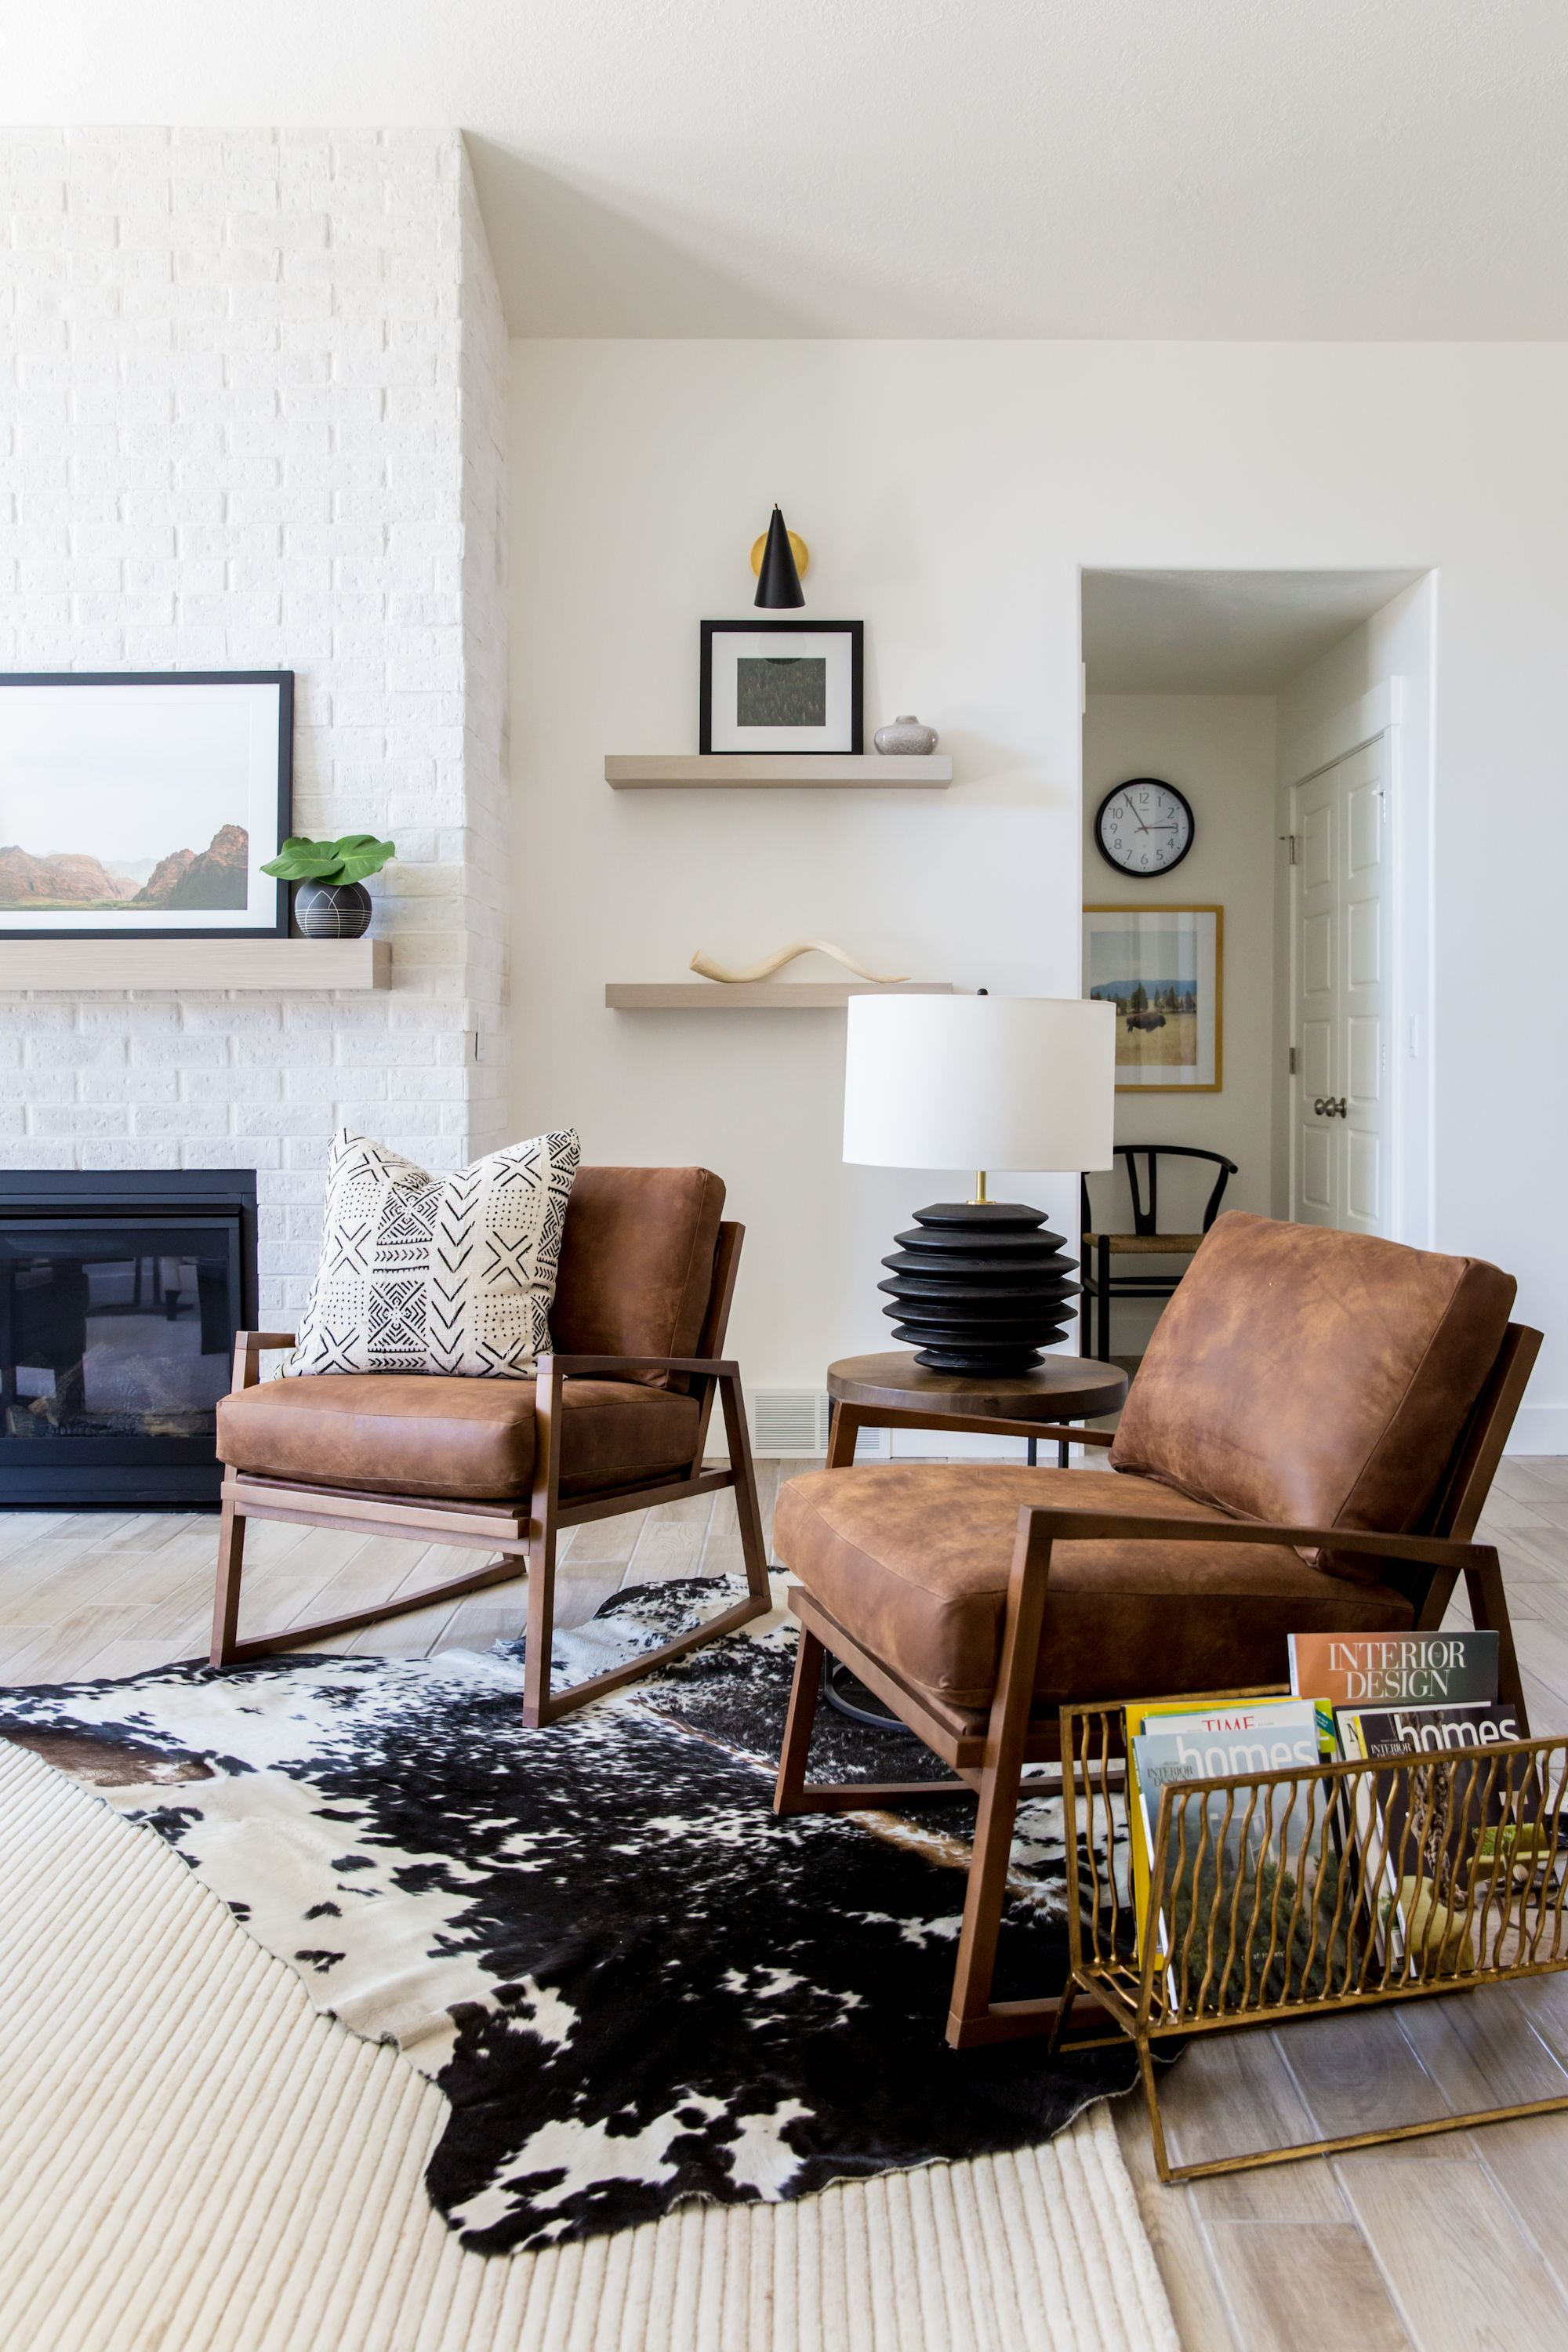 Crisp White Walls Layered Rugs And The Unmistakable Form Of